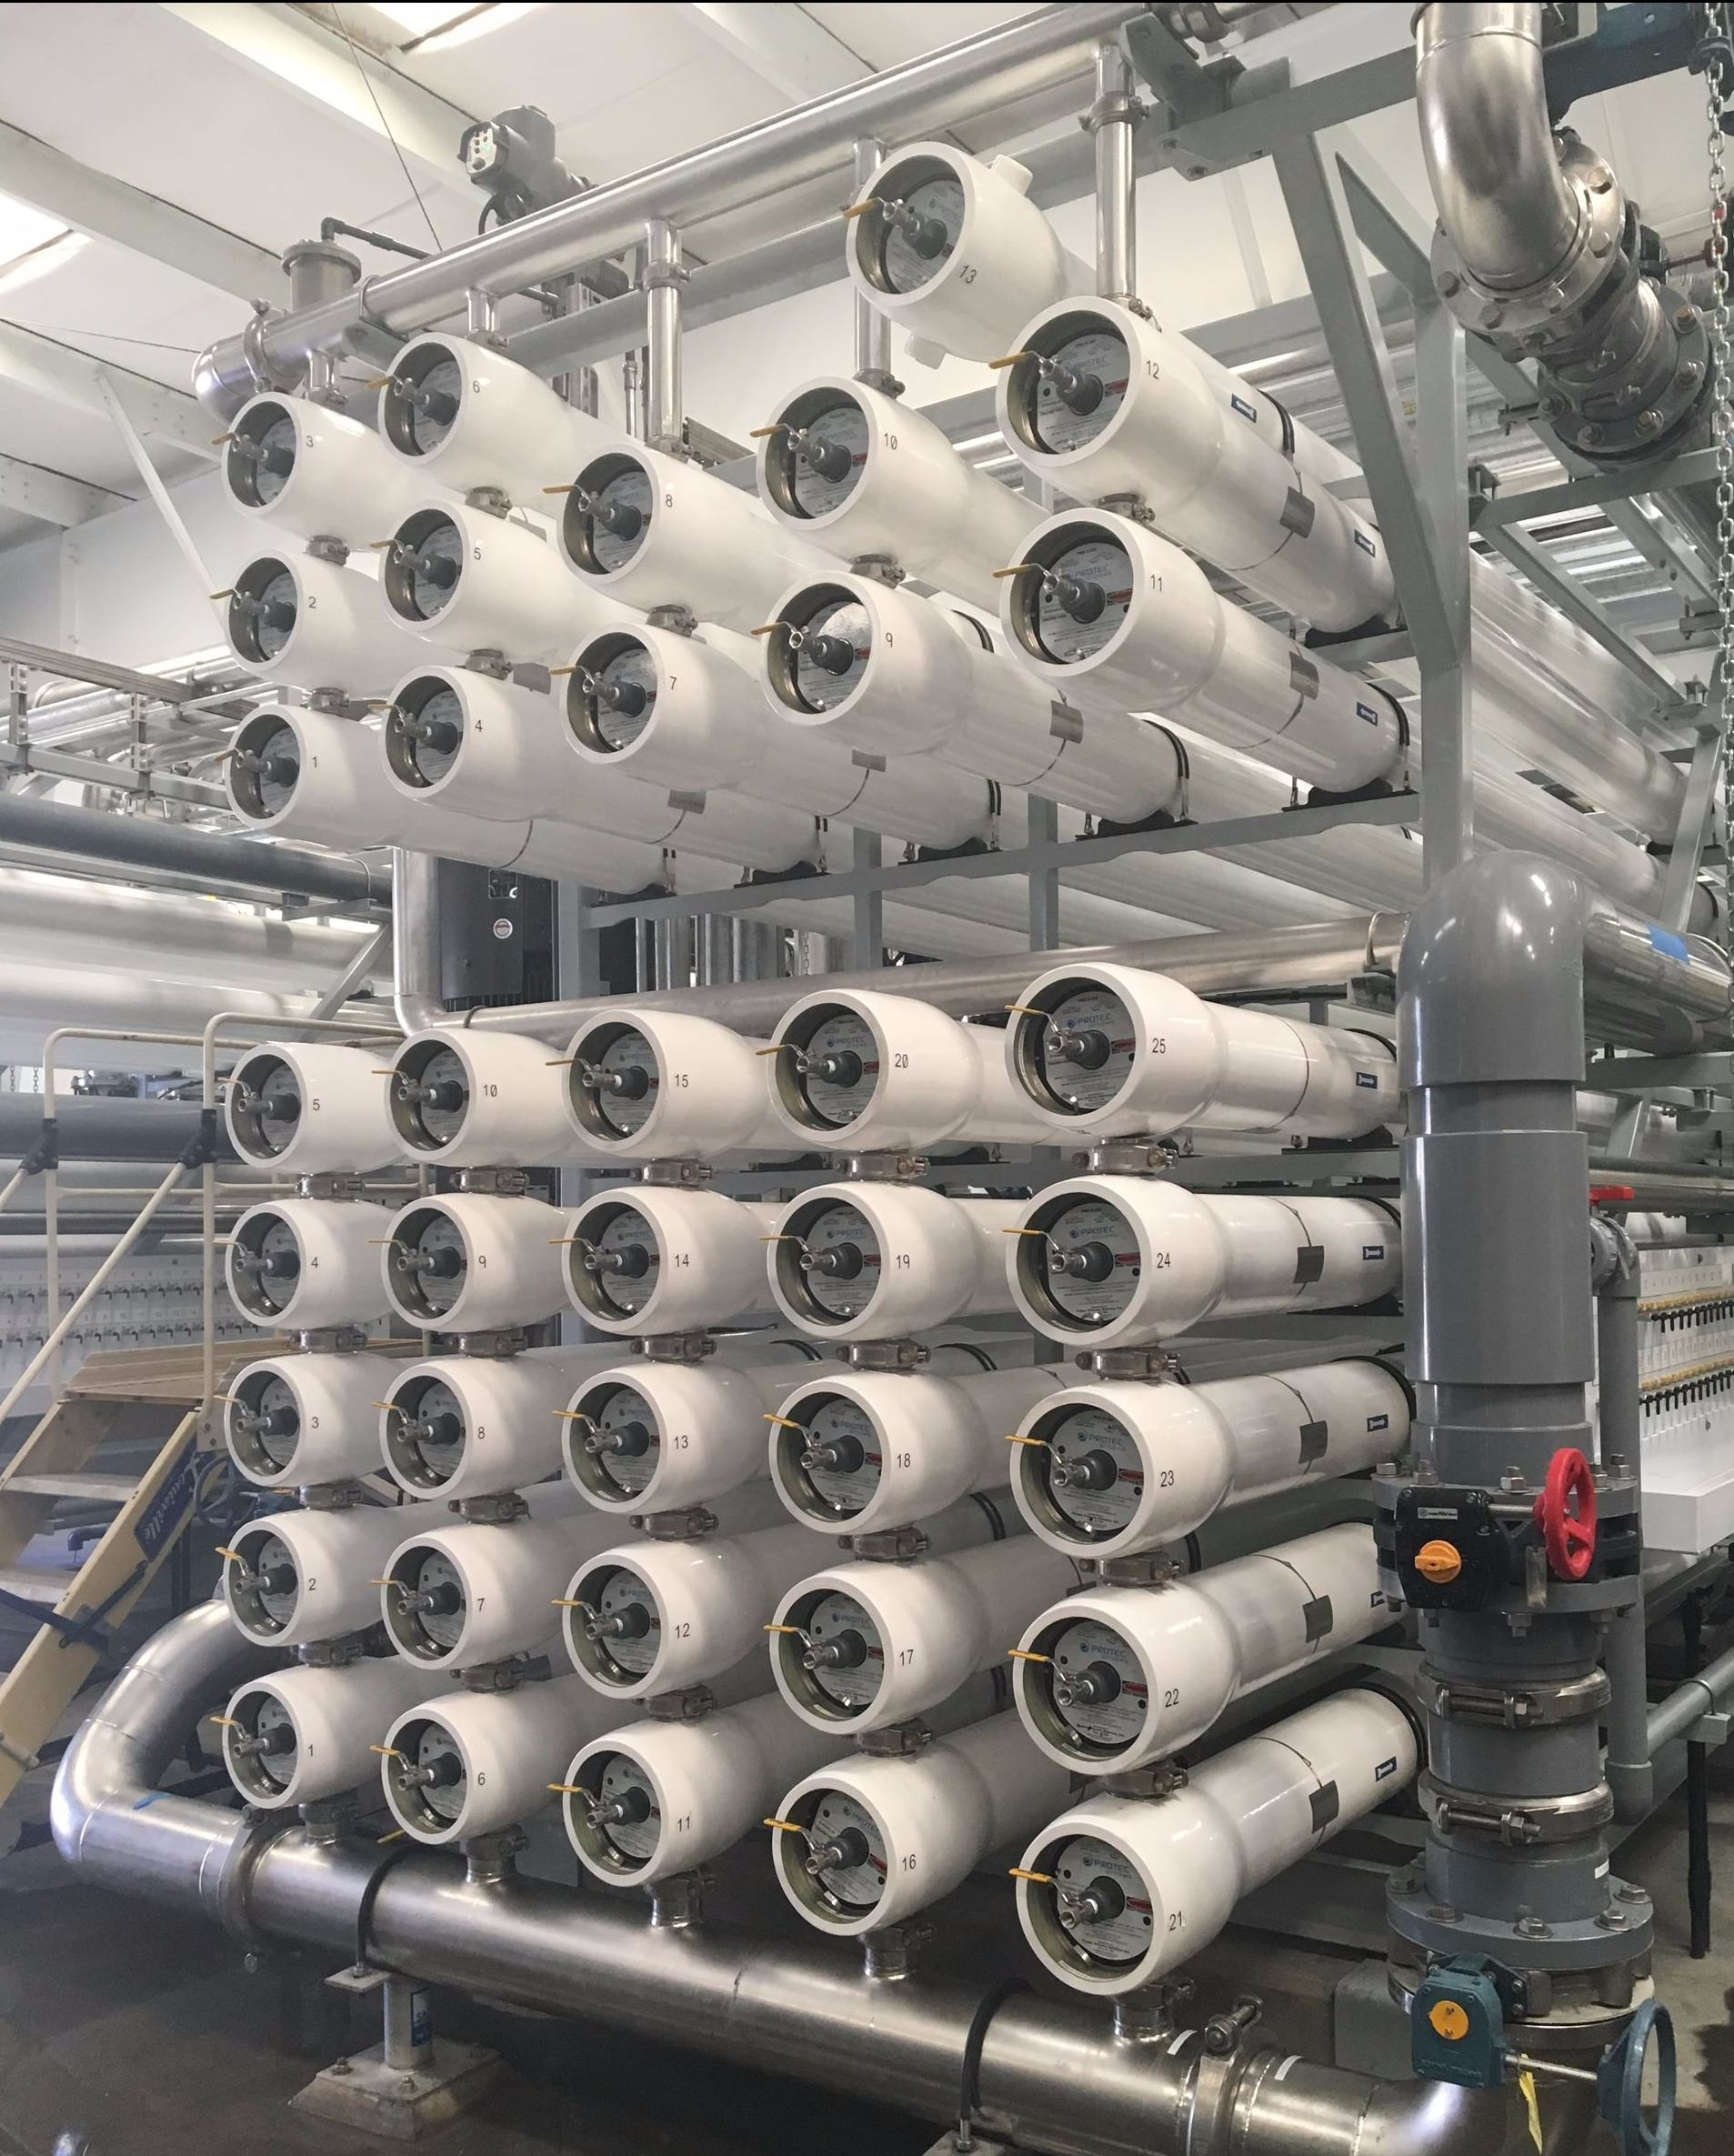 Reverse Osmosis Vessels at the Richard A. Reynolds Groundwater Desalination Facility